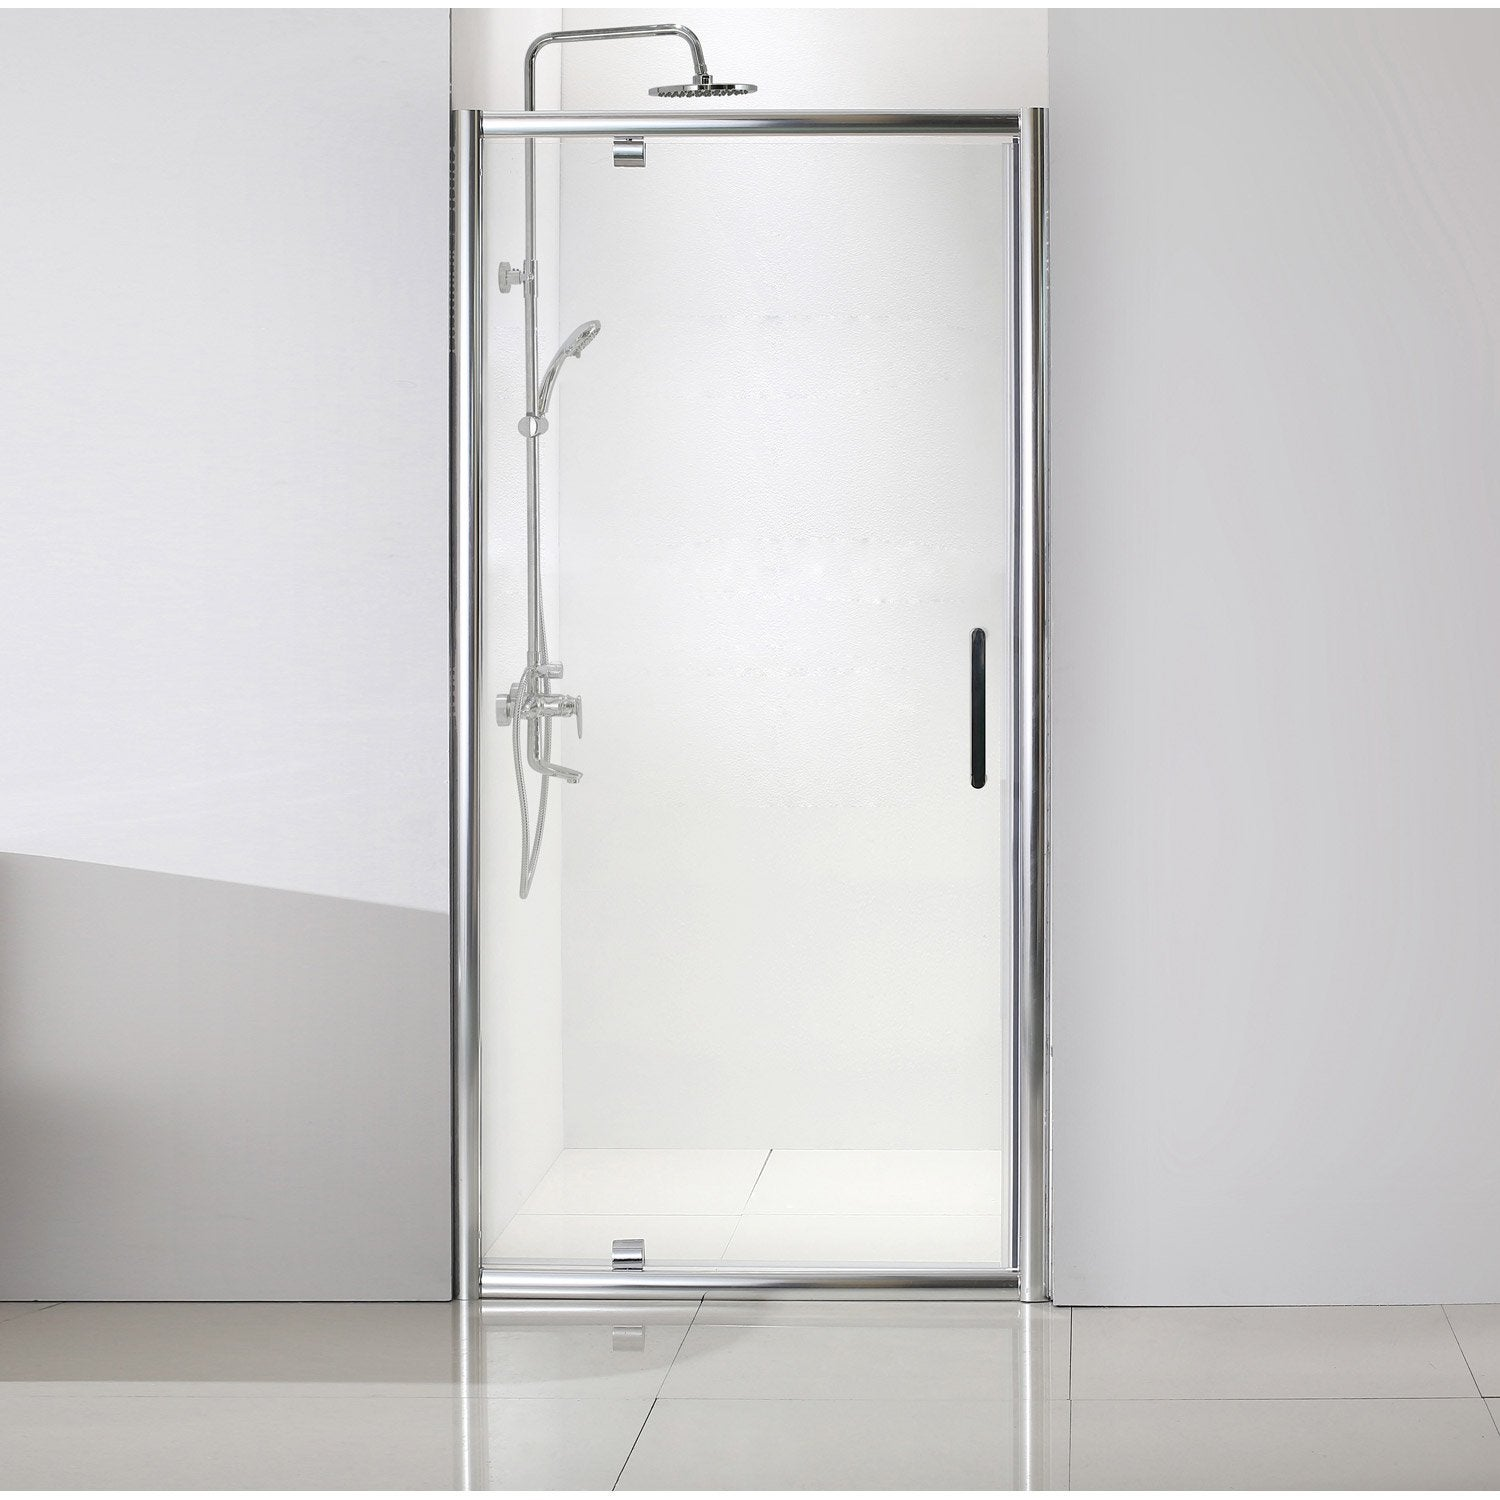 Porte de douche pivotante 100 cm transparent quad for Porte douche largeur 60 cm